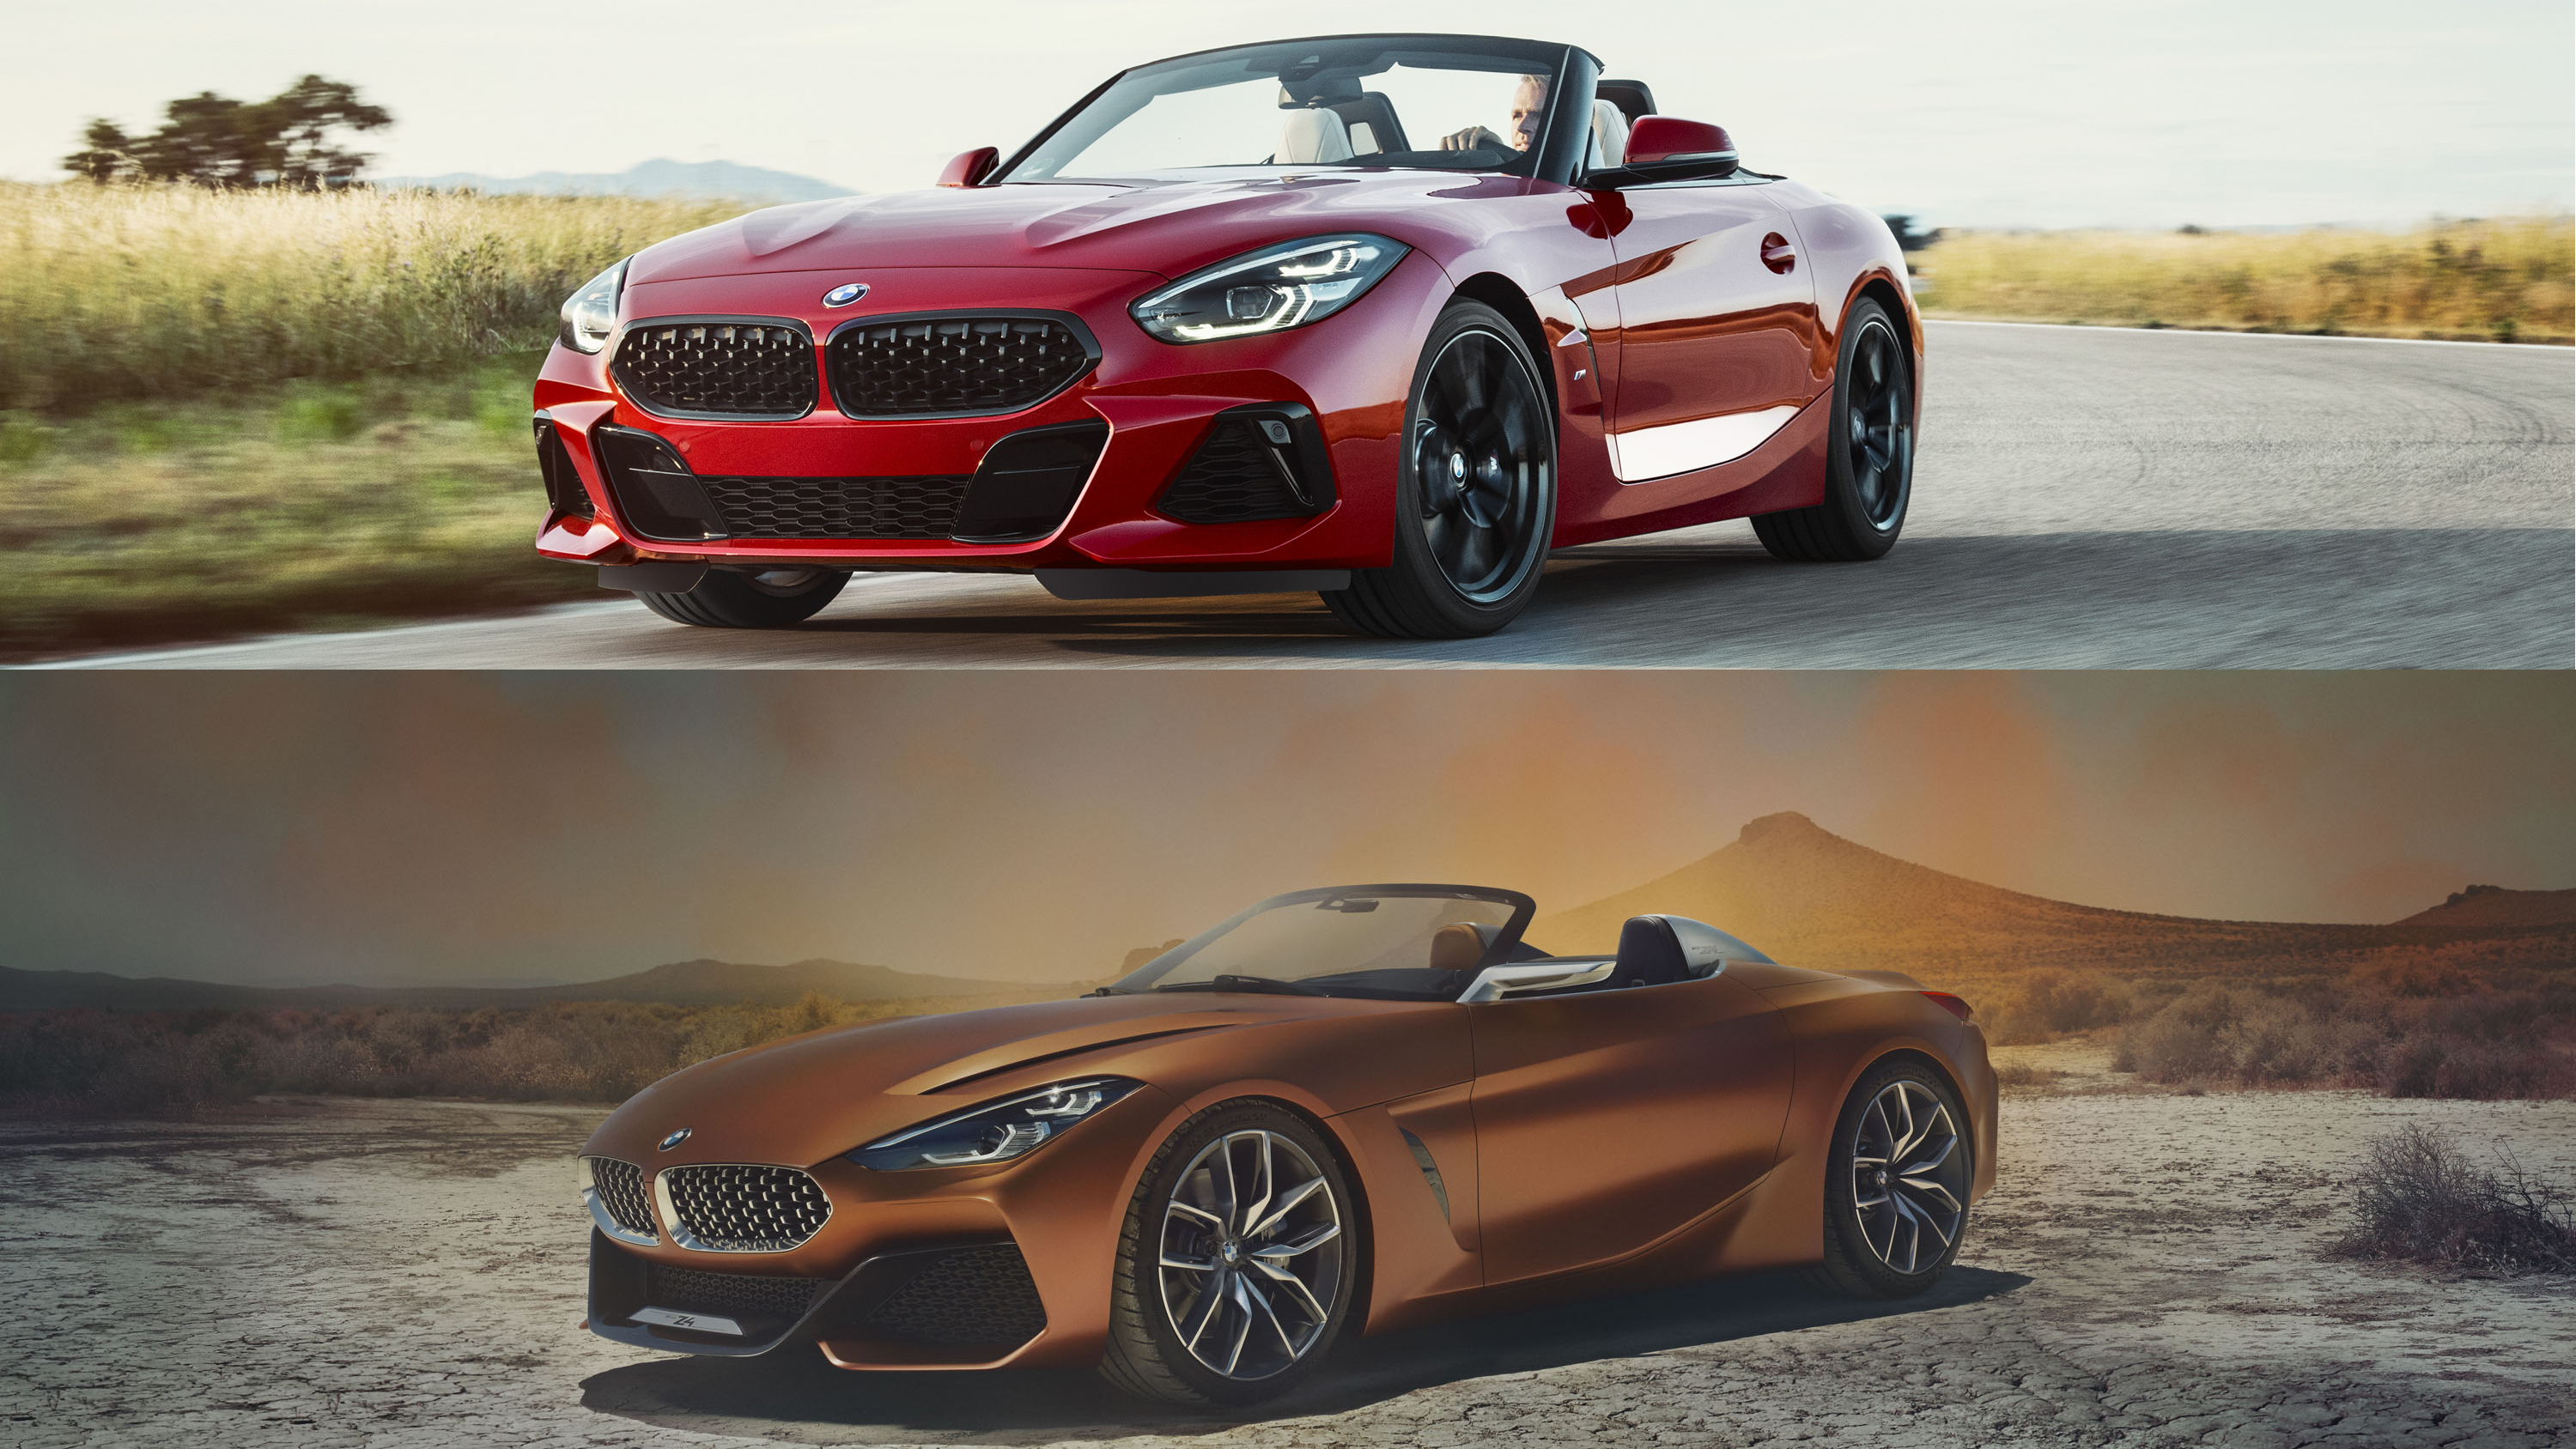 2019 Bmw Z4 Vs 2017 Bmw Z4 Concept Top Speed